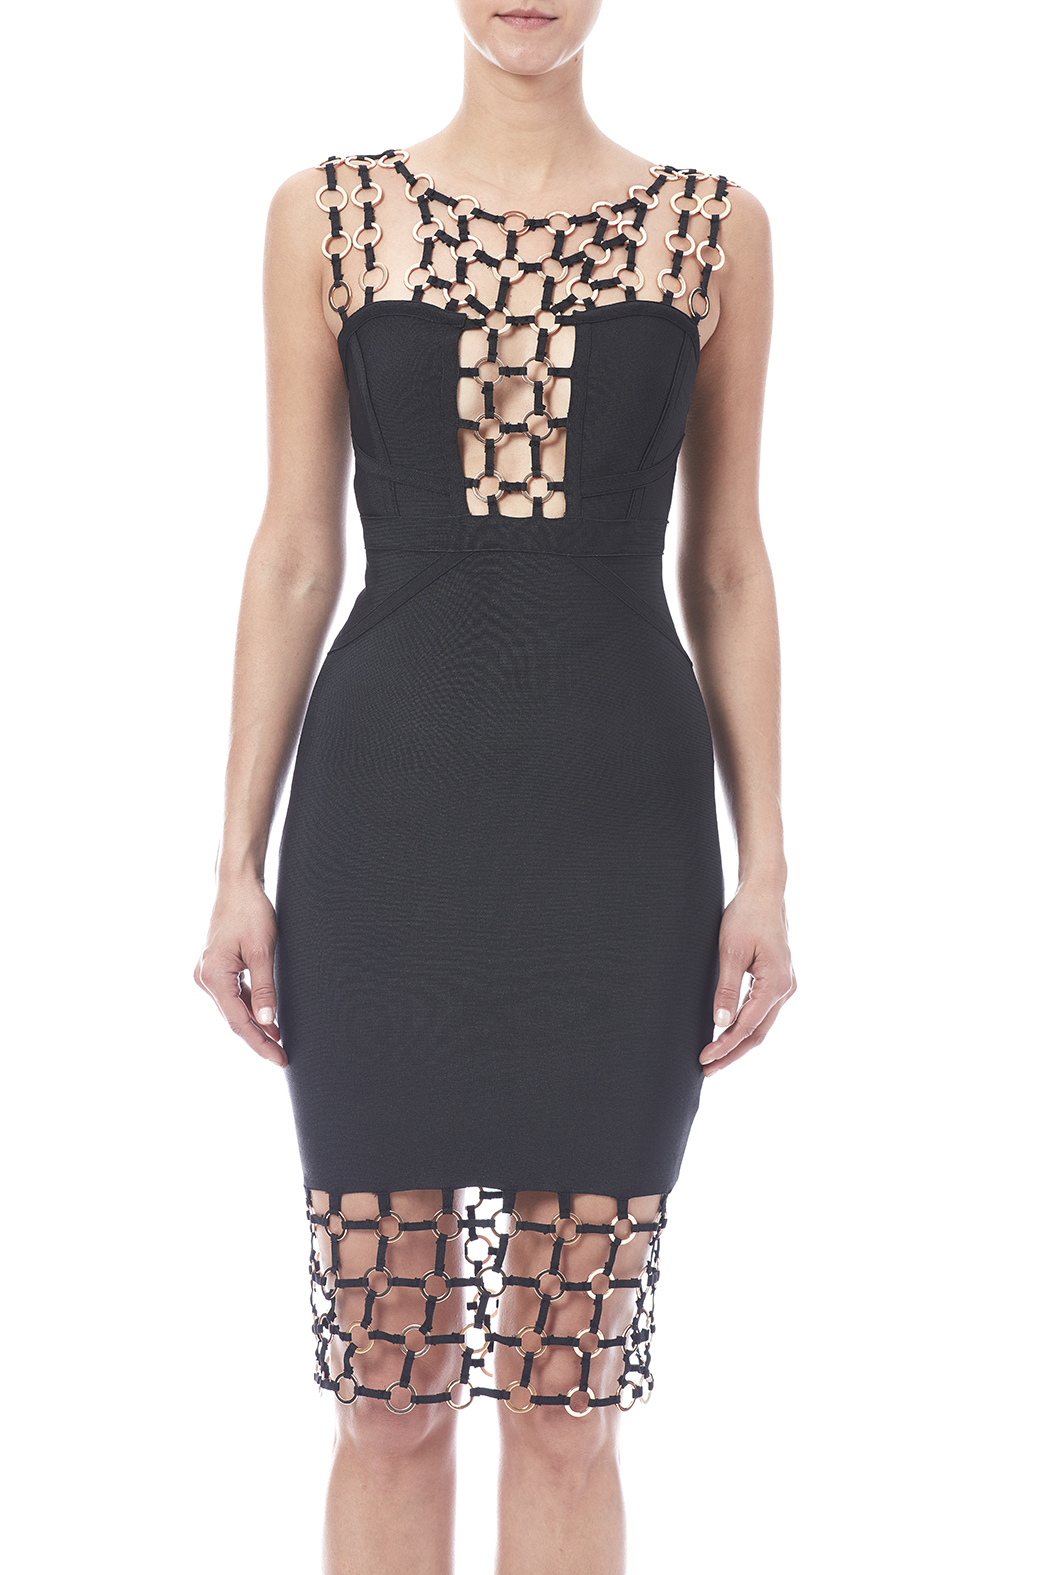 gold label grommet detail dress from new york city by dor